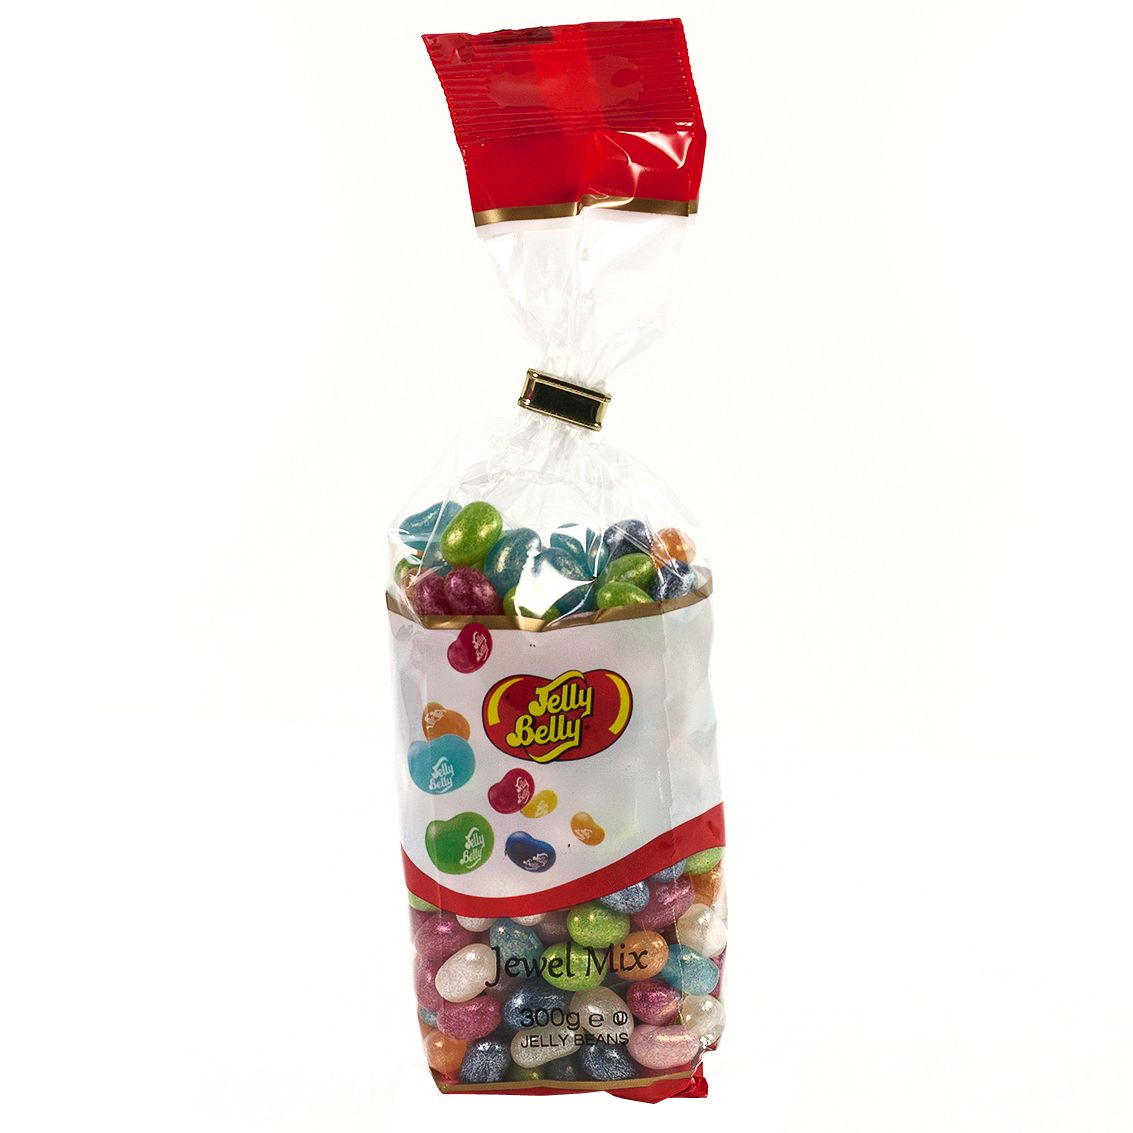 Jelly Belly Jelly Belly Jewel Mix Tie top Bag, 300g